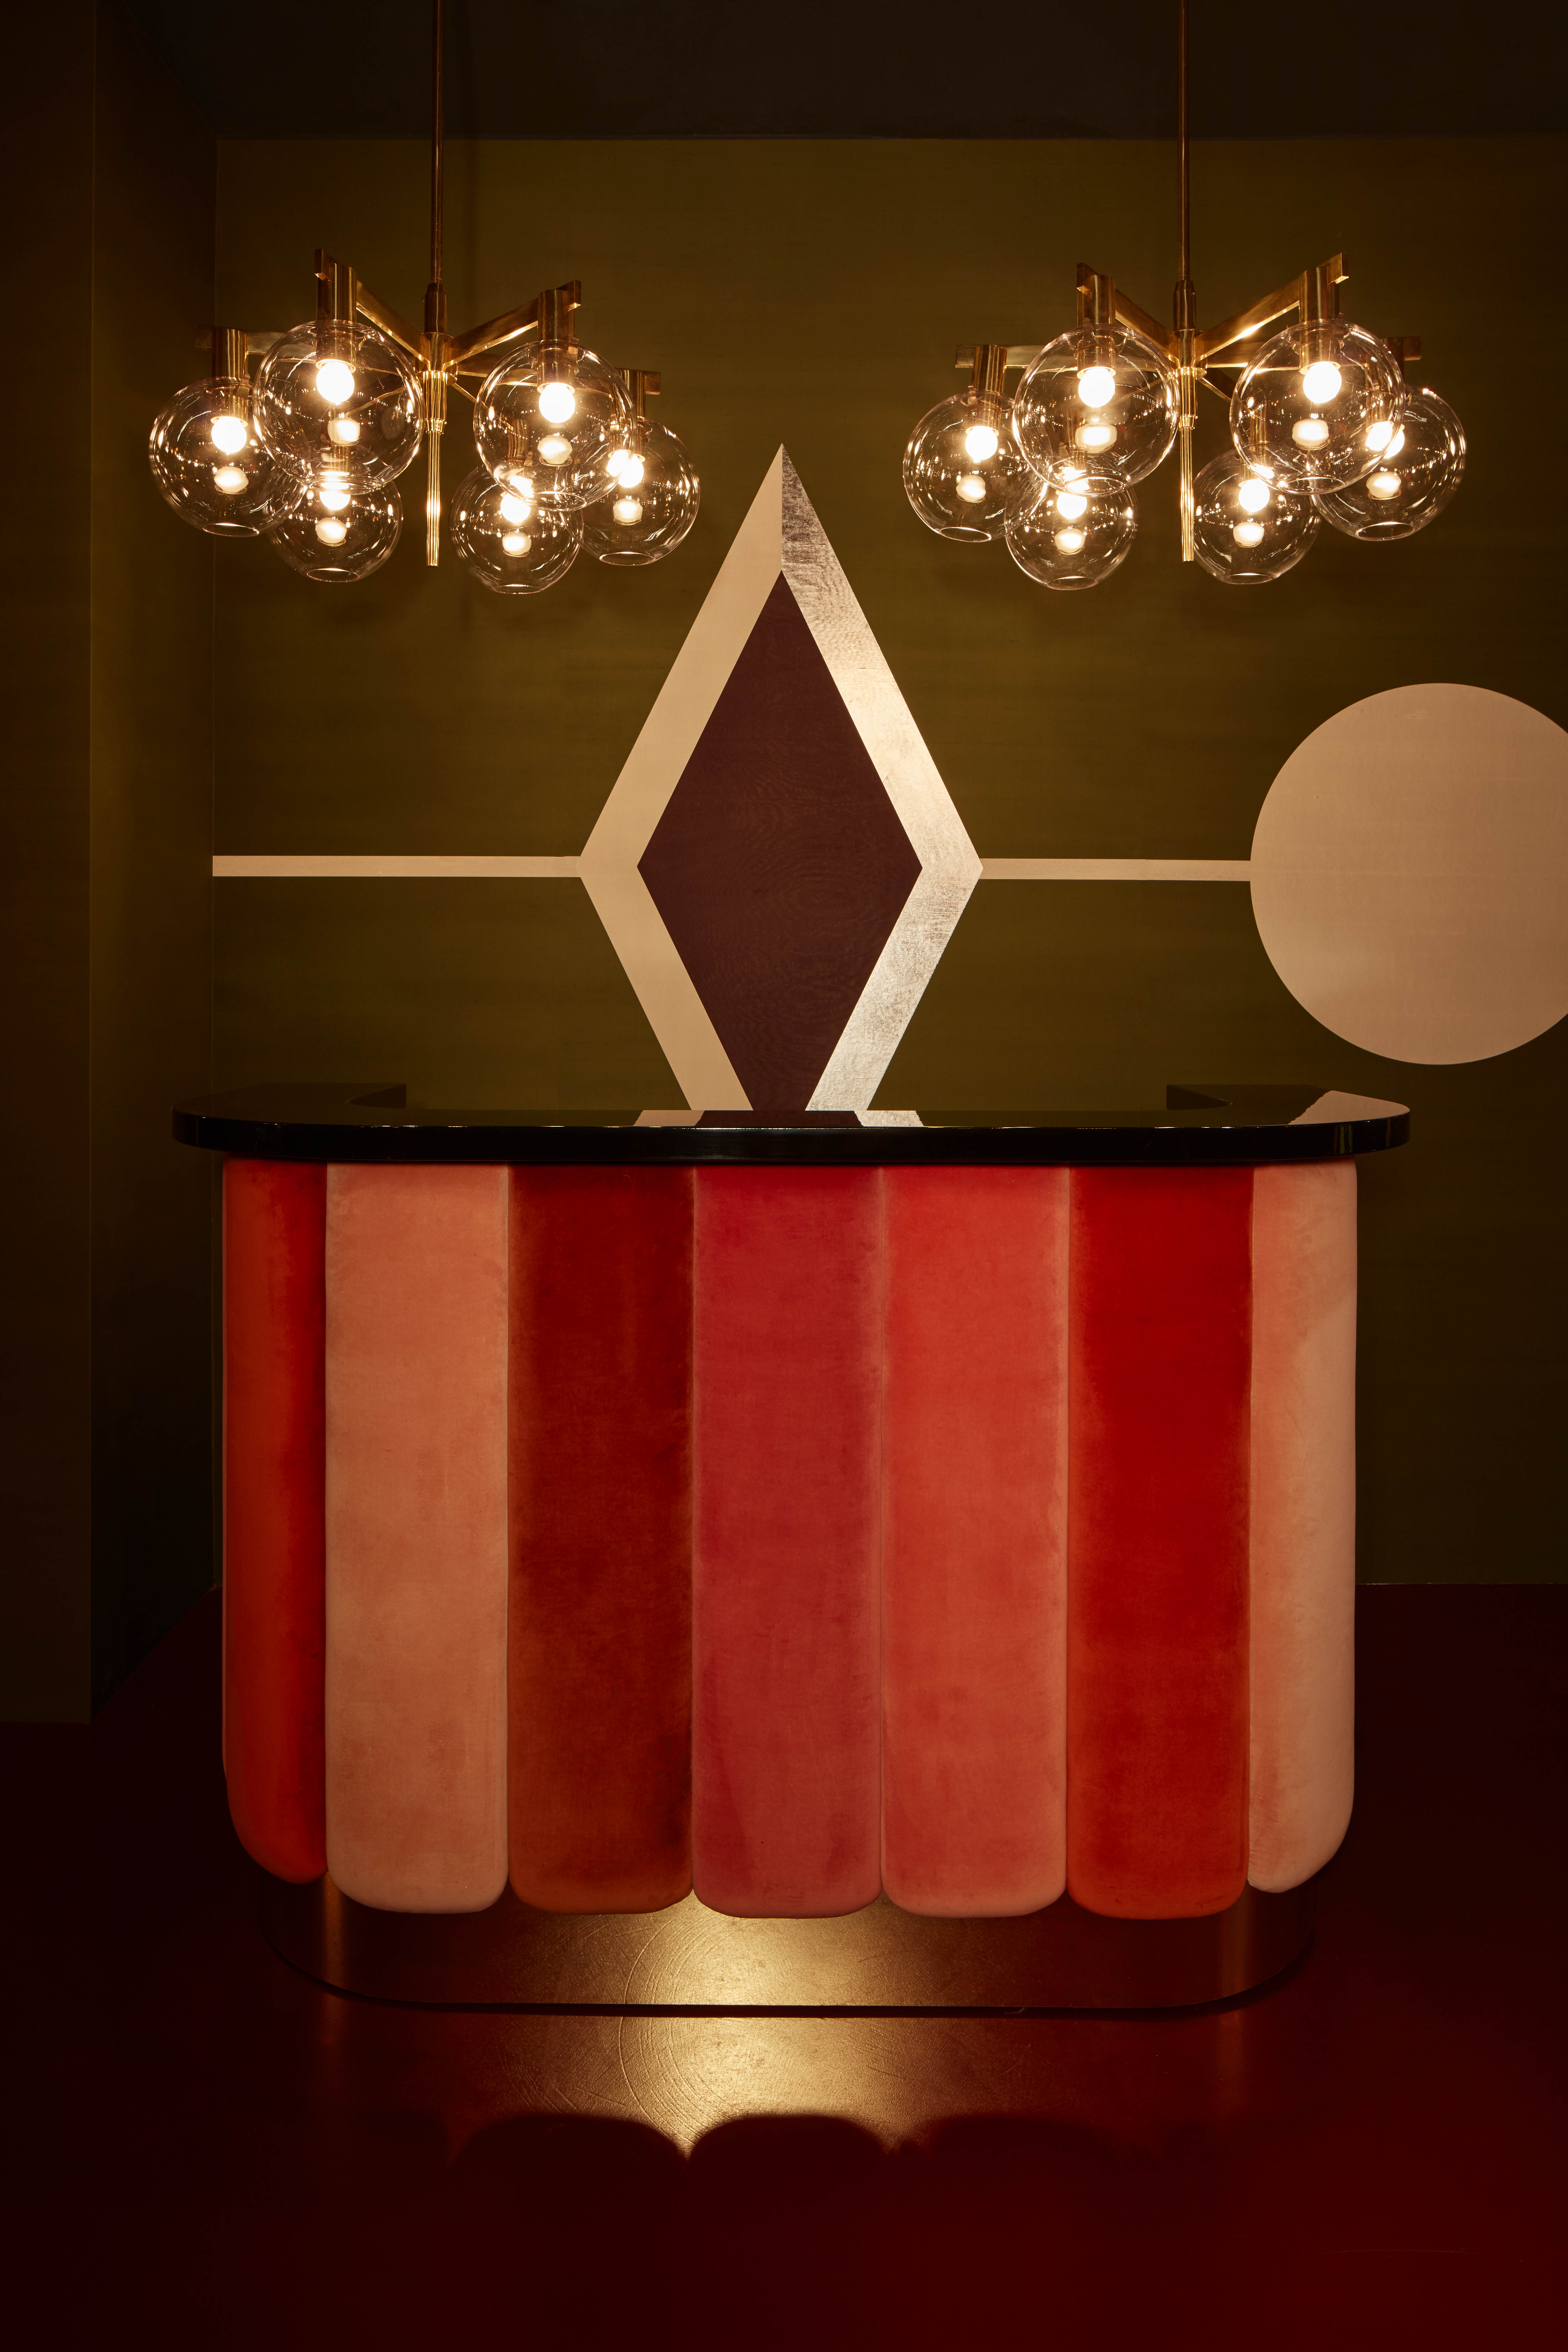 EMBRACE INDULGENCE - CHEZ NINA BY INDIA MAHDAVI FOR NILUFAR GALLERY ©Heimtextil trend book